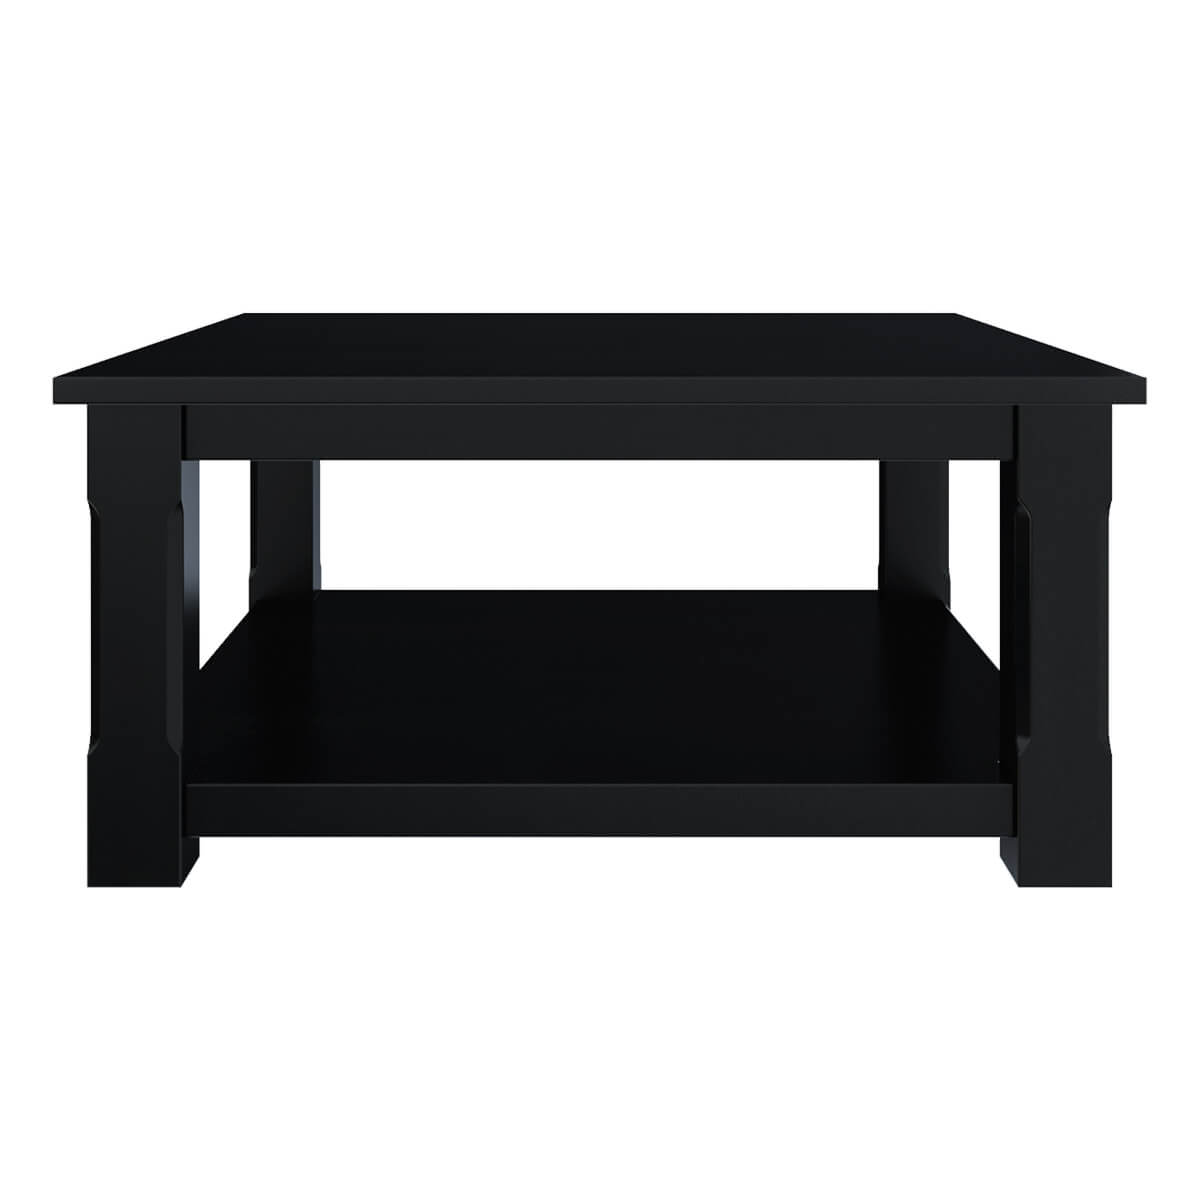 Floating Square Coffee Table In Green And Black Slatelike: Black Wood Square Coffee Table